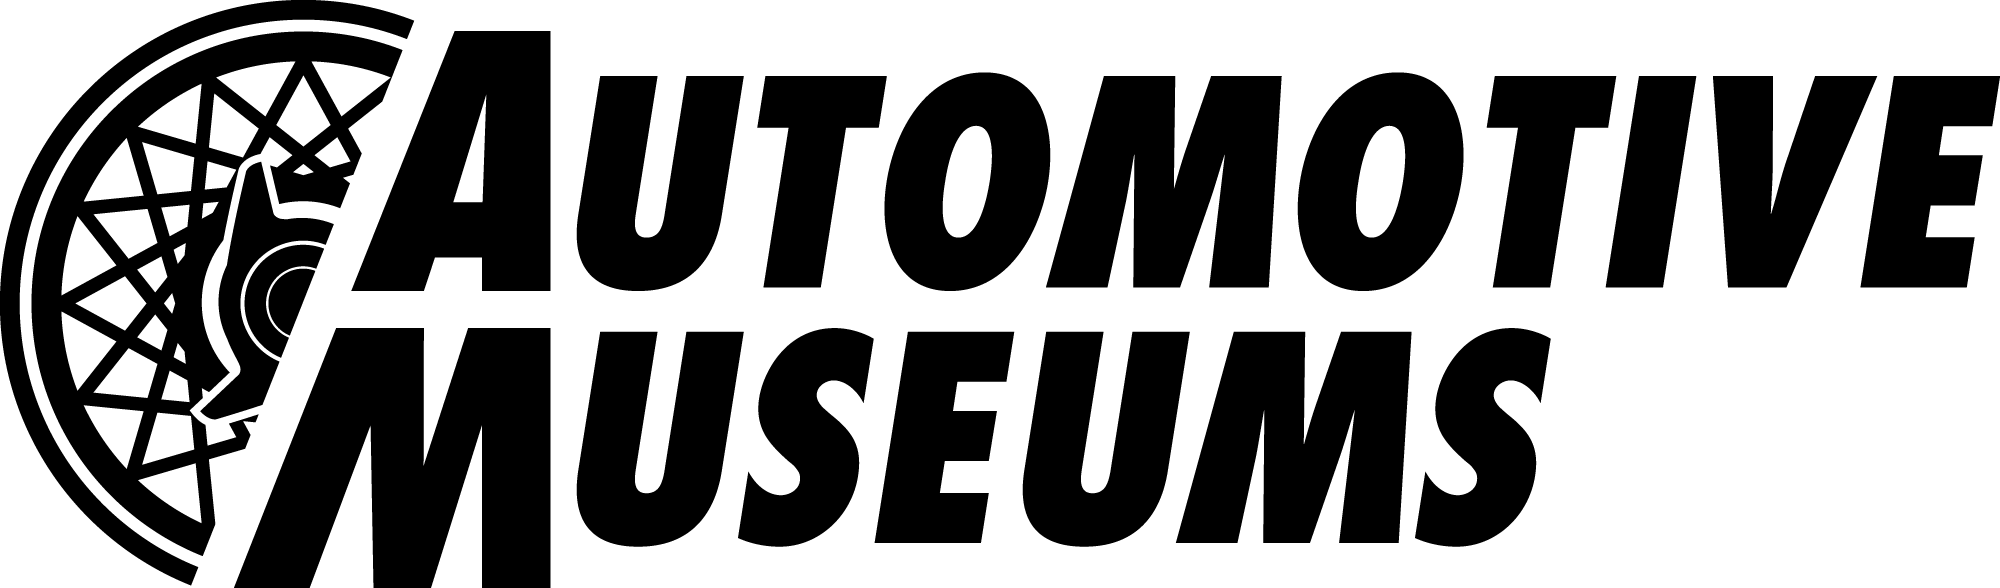 AUTOMOTIVE MUSEUMS - The most important directory of museums and collections dedicated to vehicles